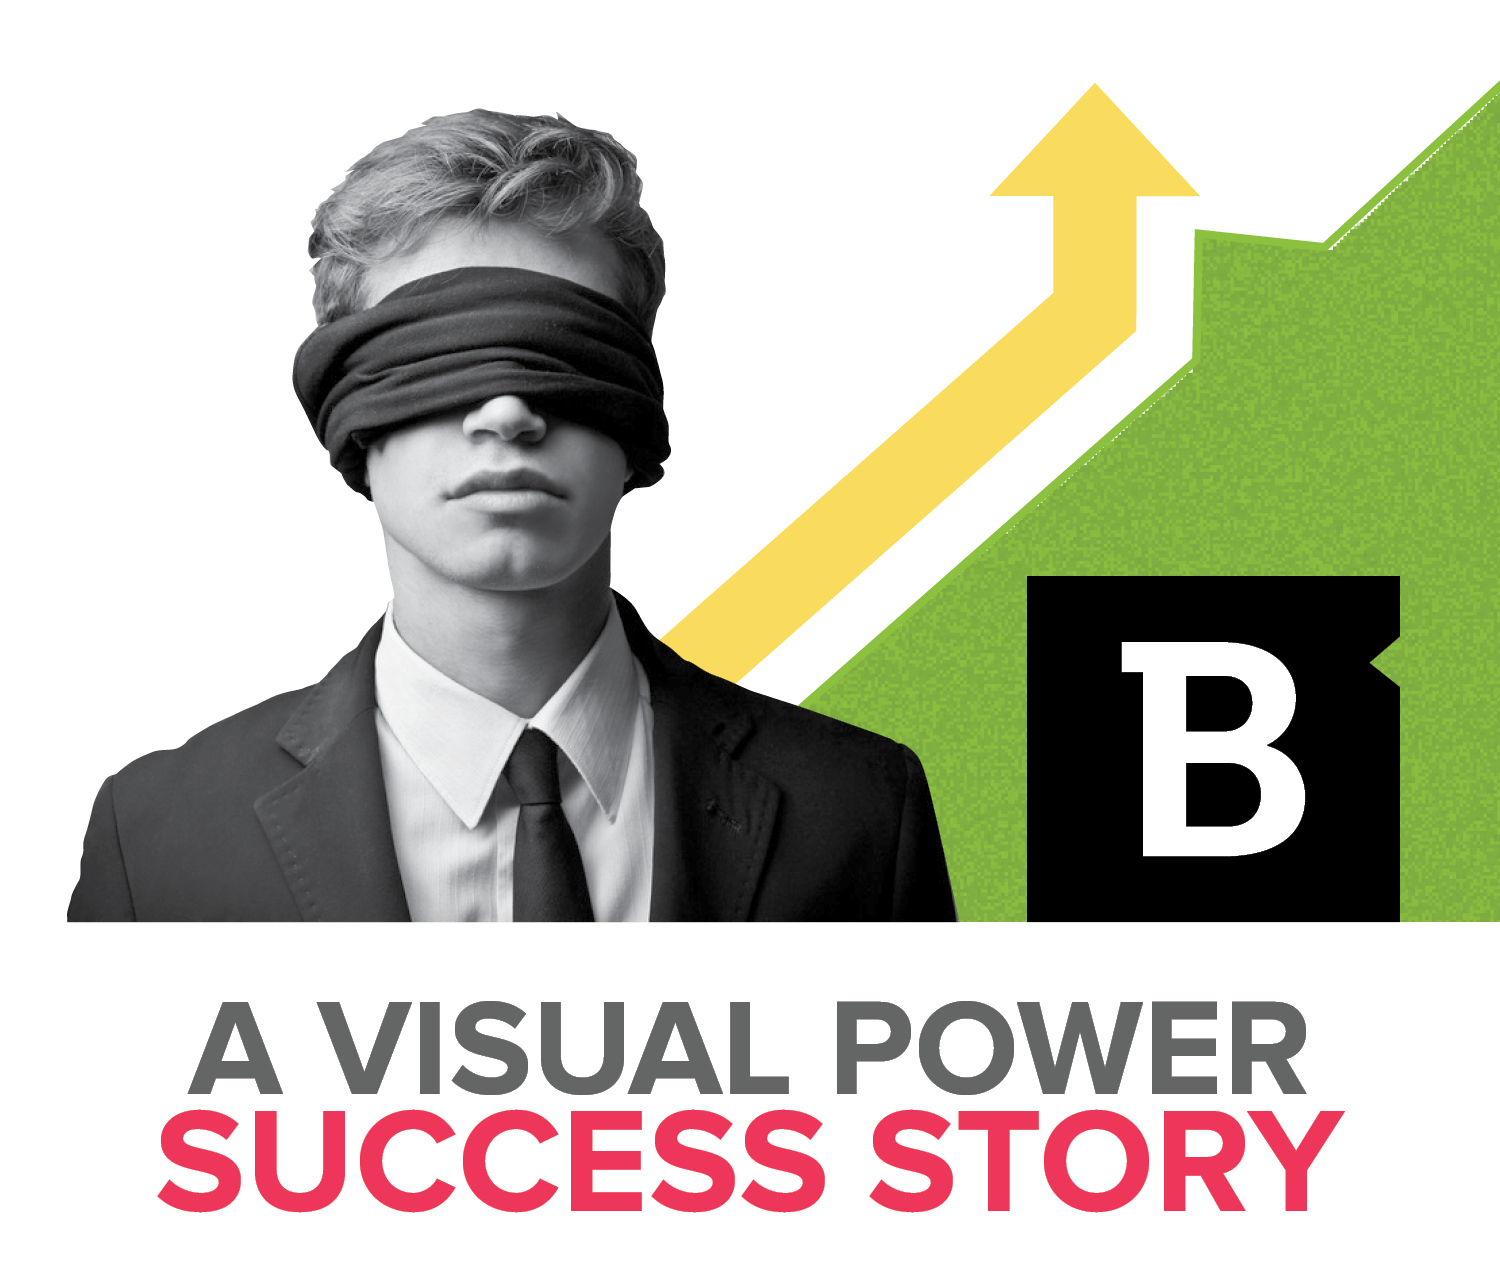 Content marketing is less likely to succeed without visuals and our client proves it.